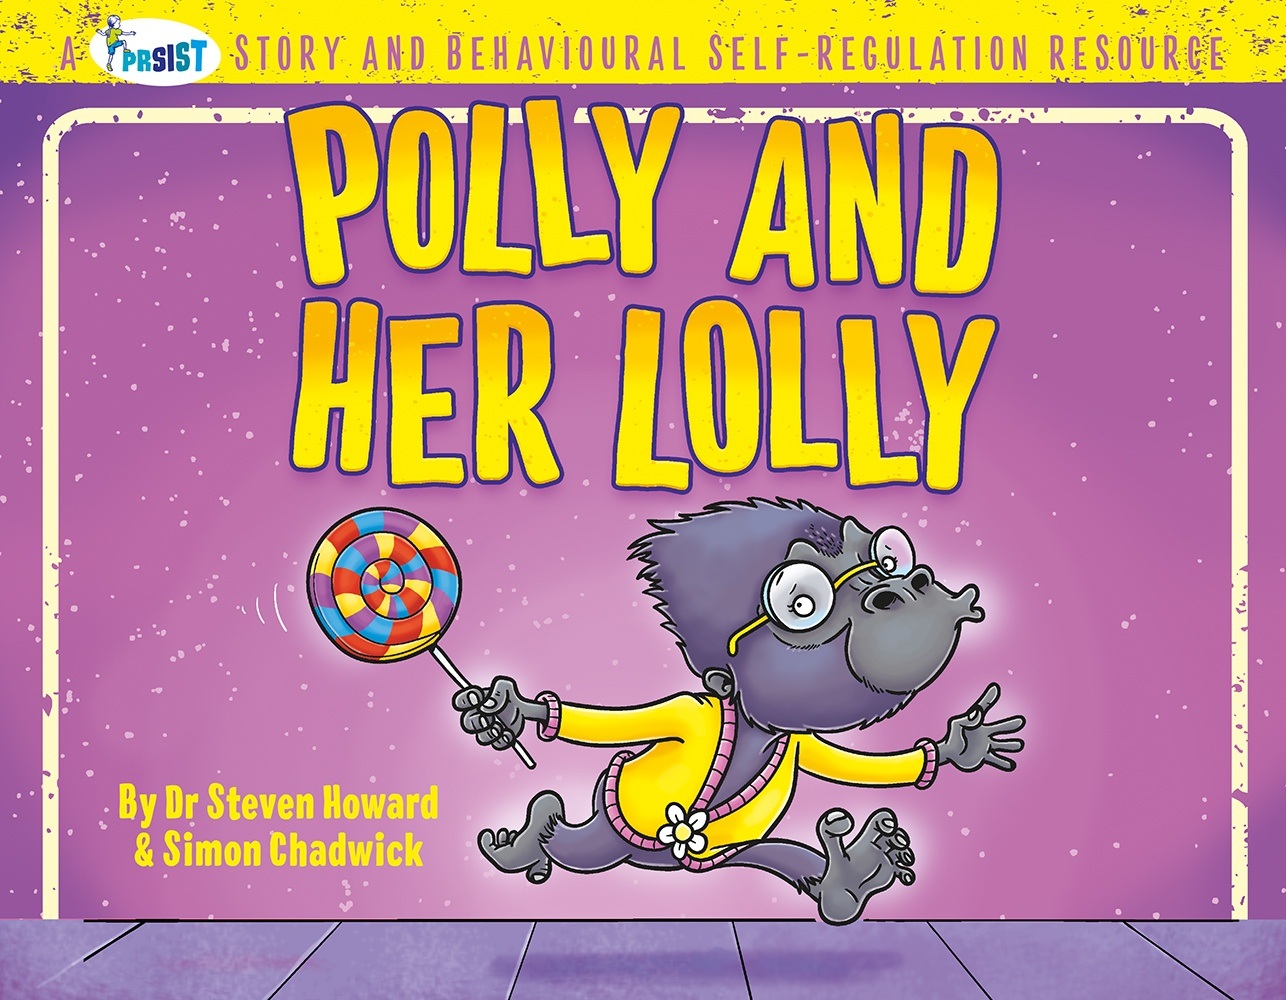 Cover for Polly And Her Lolly from Ceratopia Books, a PRSIST book